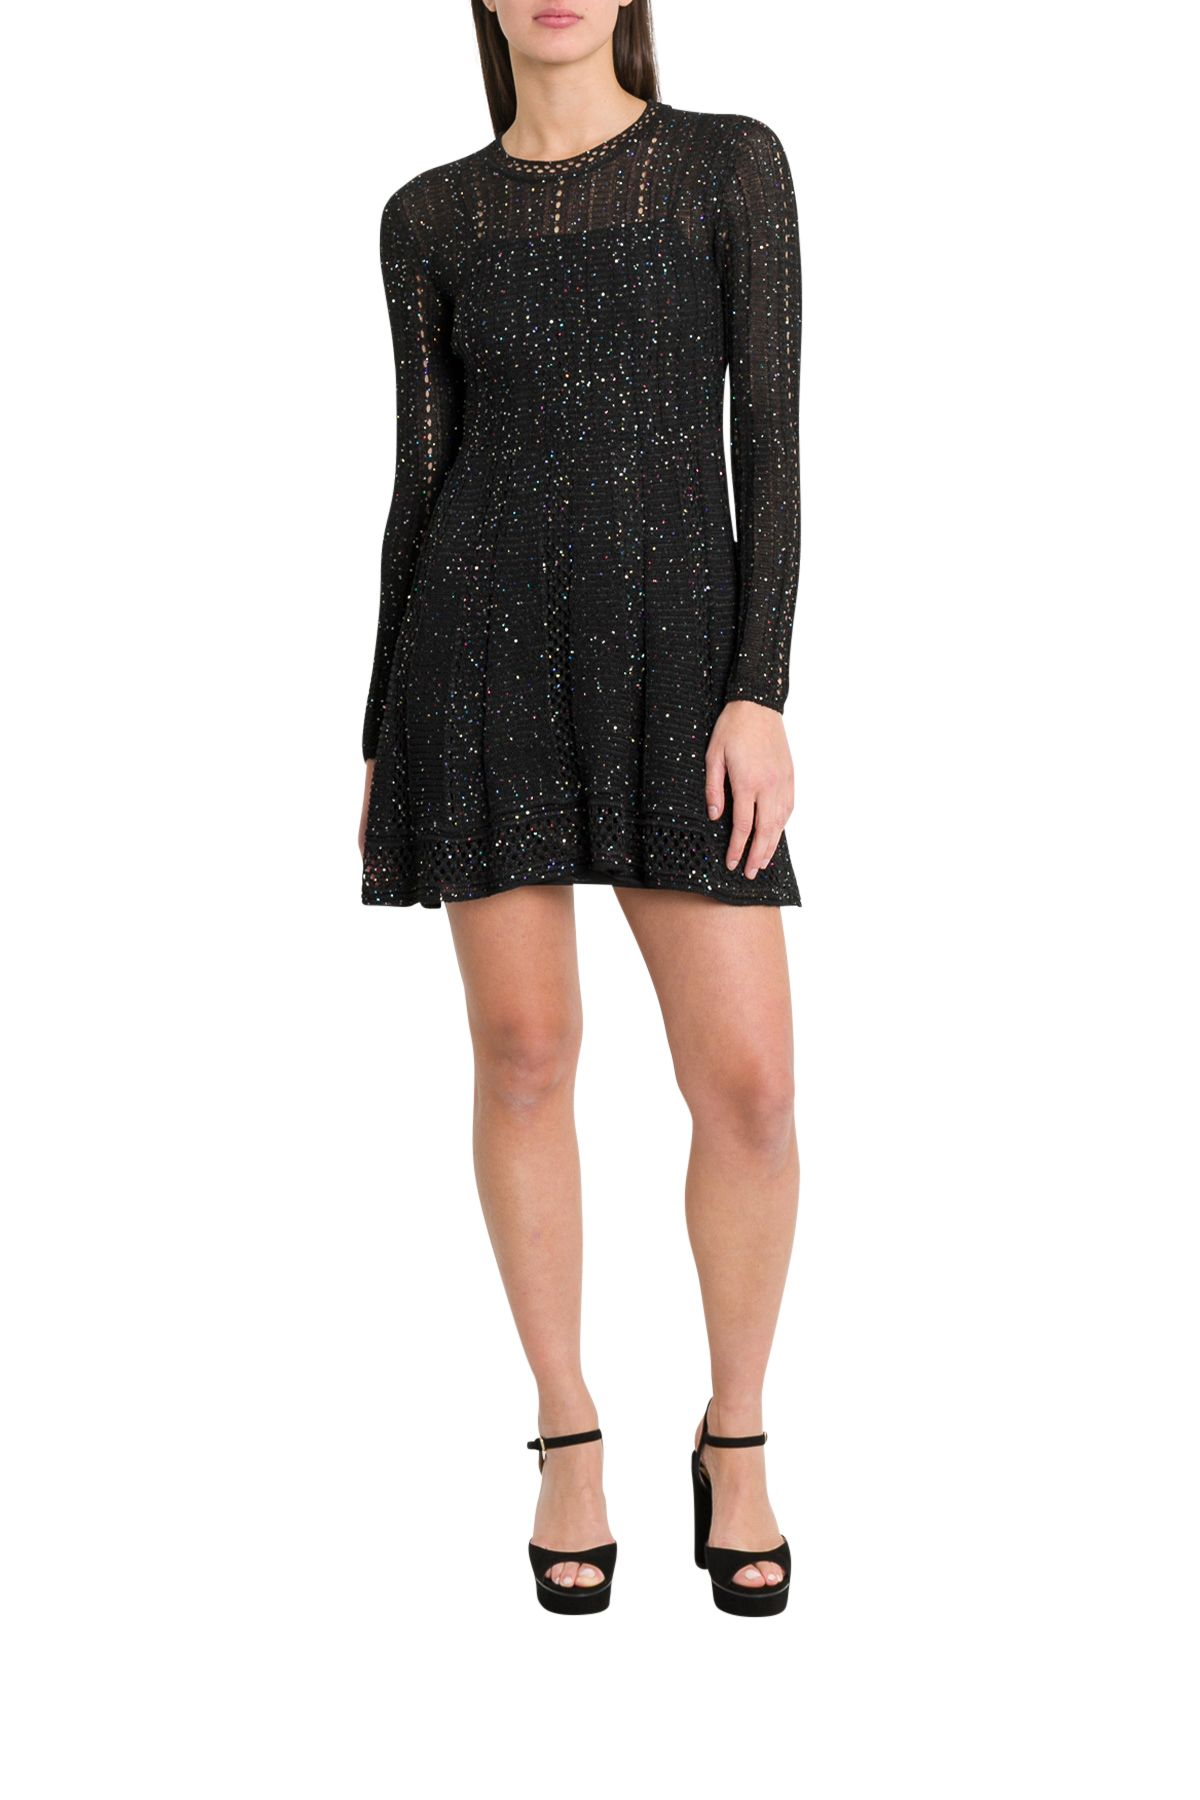 1aeef35c2b20 M Missoni M Missoni Short Dress With Sequins - Black - 10802271 ...